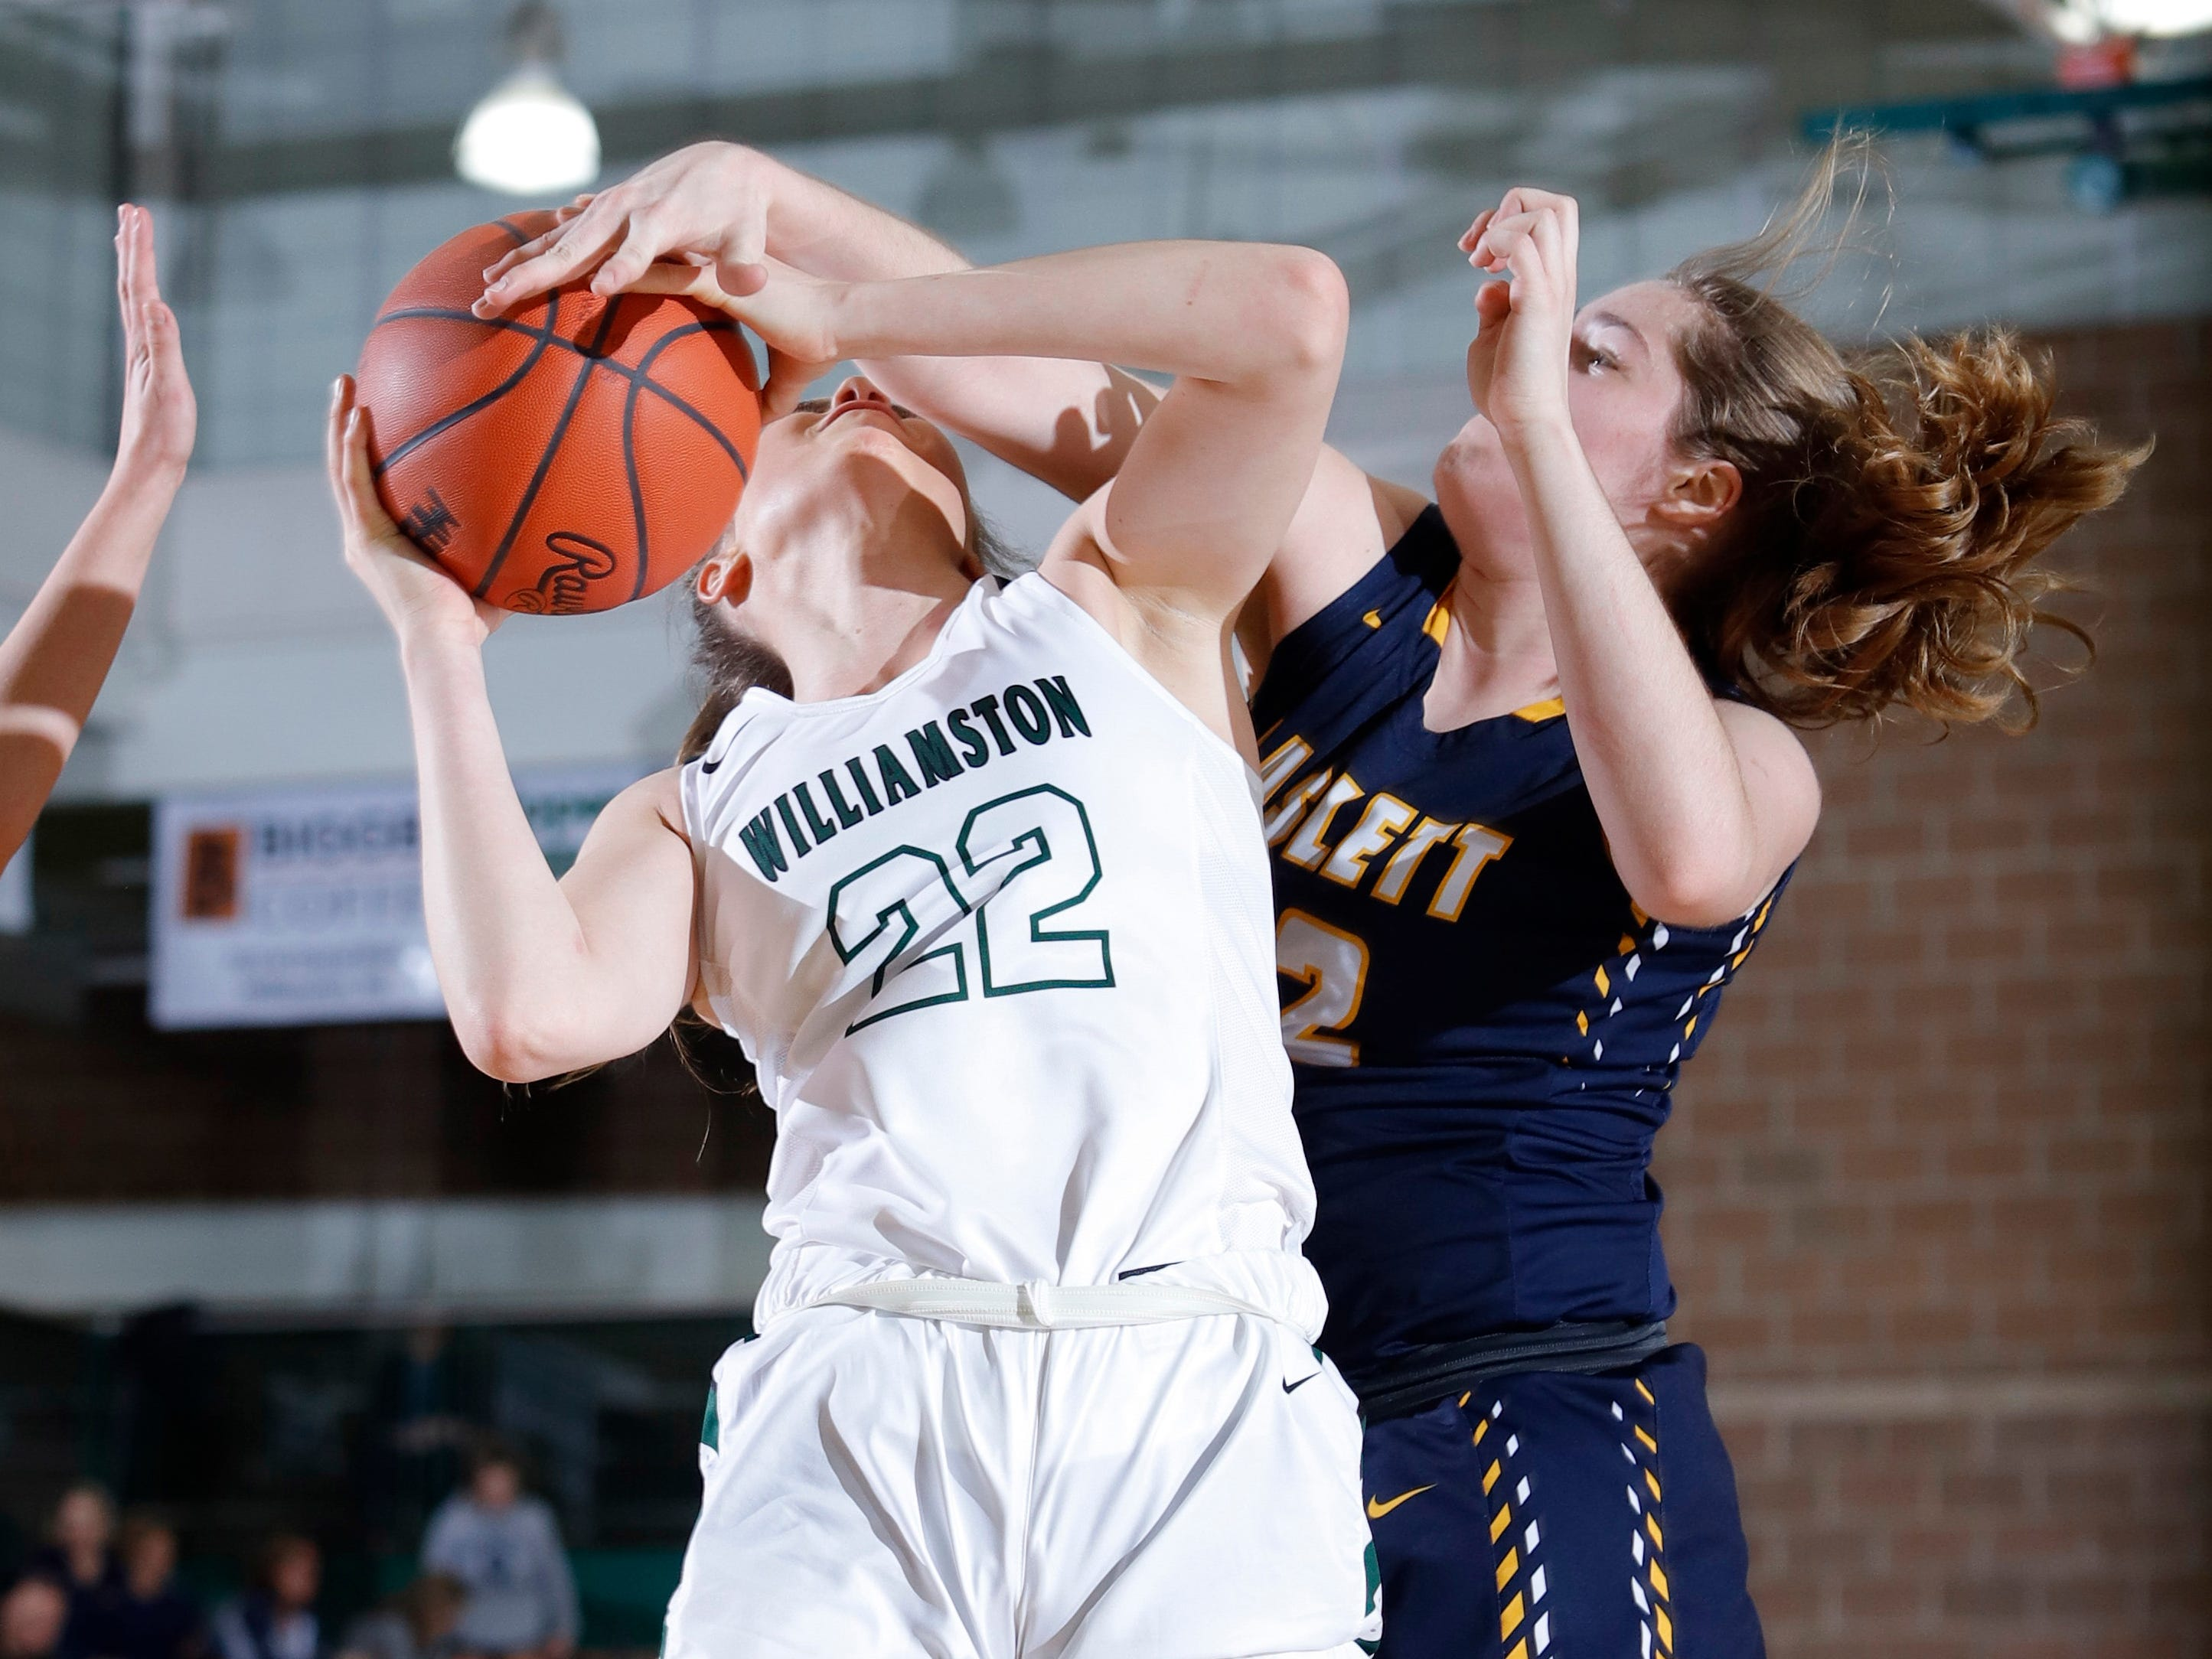 Williamston's Kenzie Lewis (22) shoots and draws a foul against Haslett's Olivia Green, Friday, Jan. 11, 2019, in Williamston, Mich.